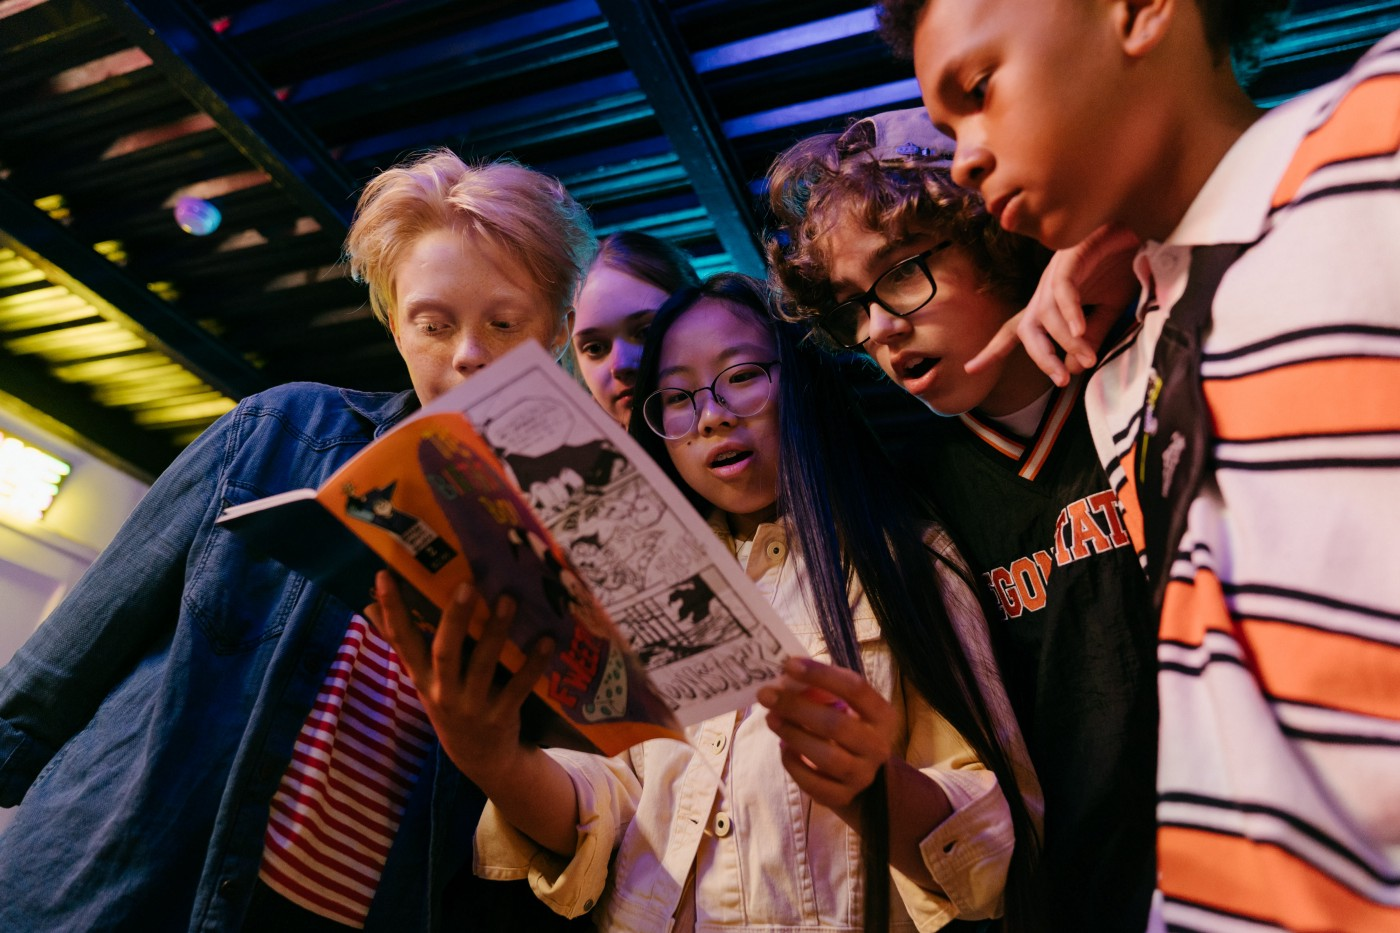 Five children reading a comic book together